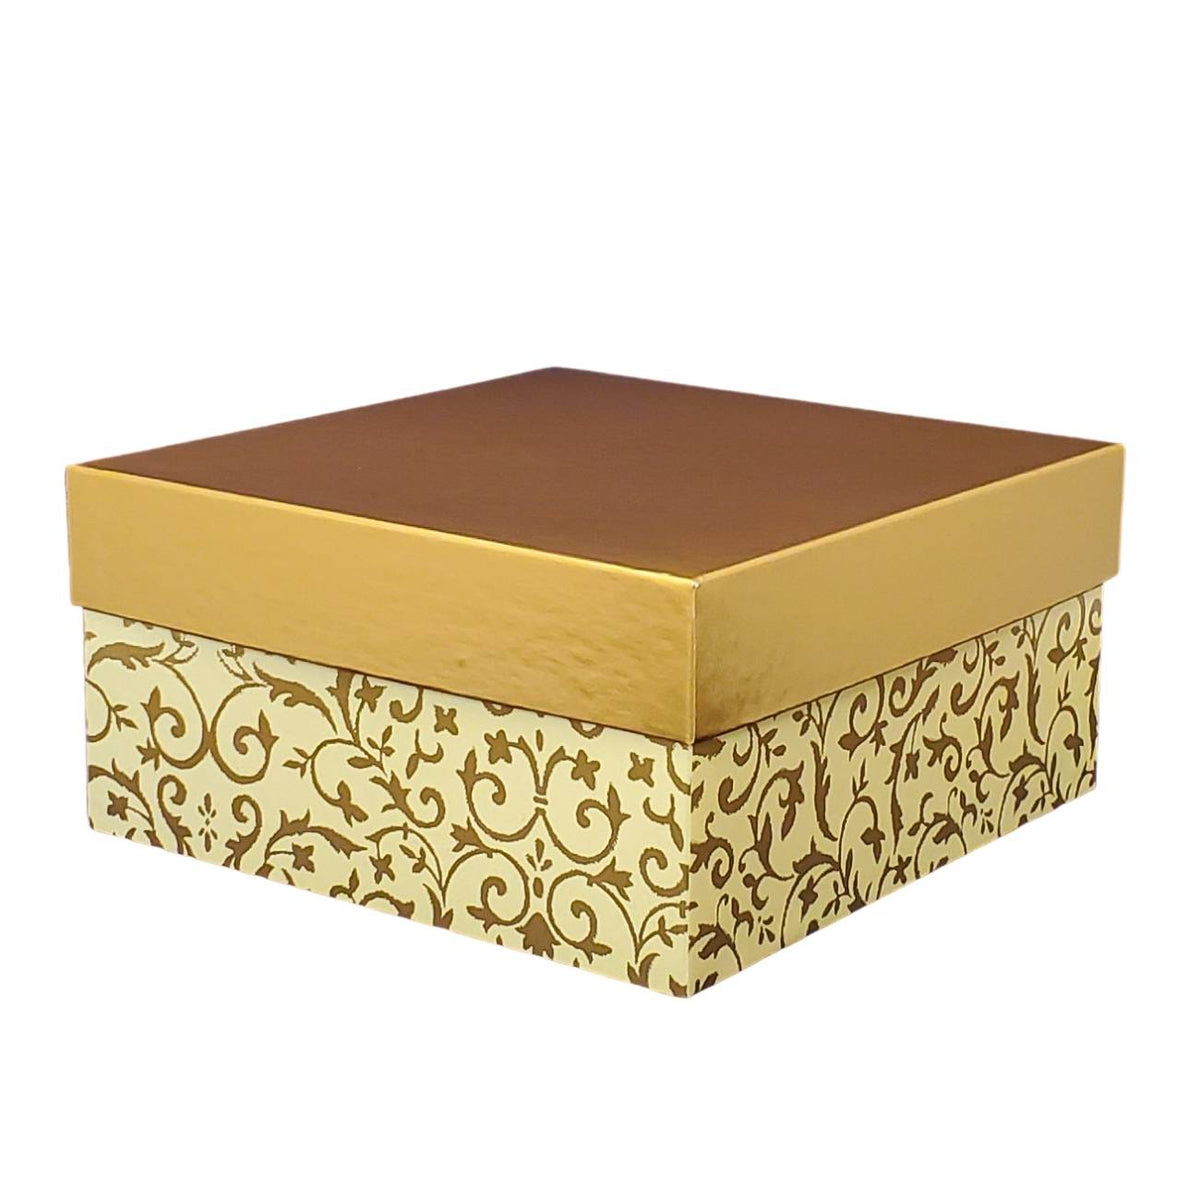 Dessert Collection | Gift Box of Handmade Soaps for Her